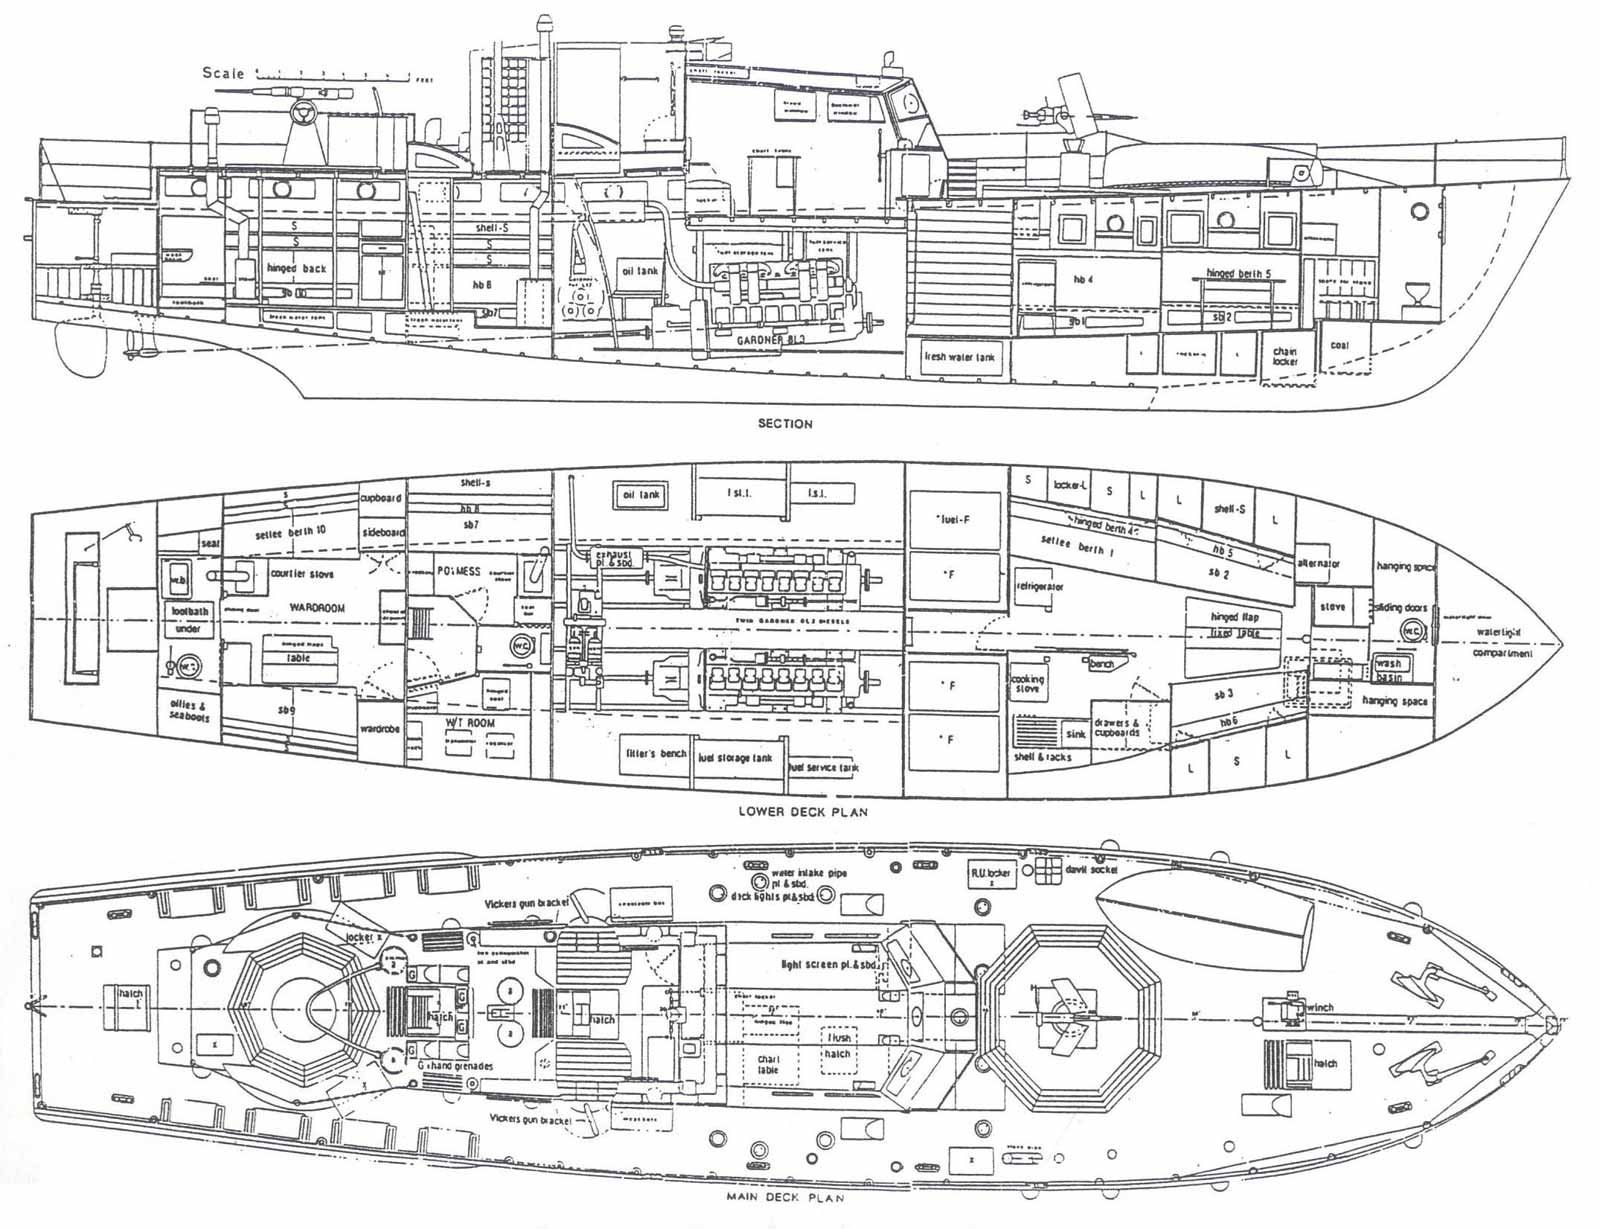 boat blueprint - Google zoeken | Cutaways | Boat plans ...